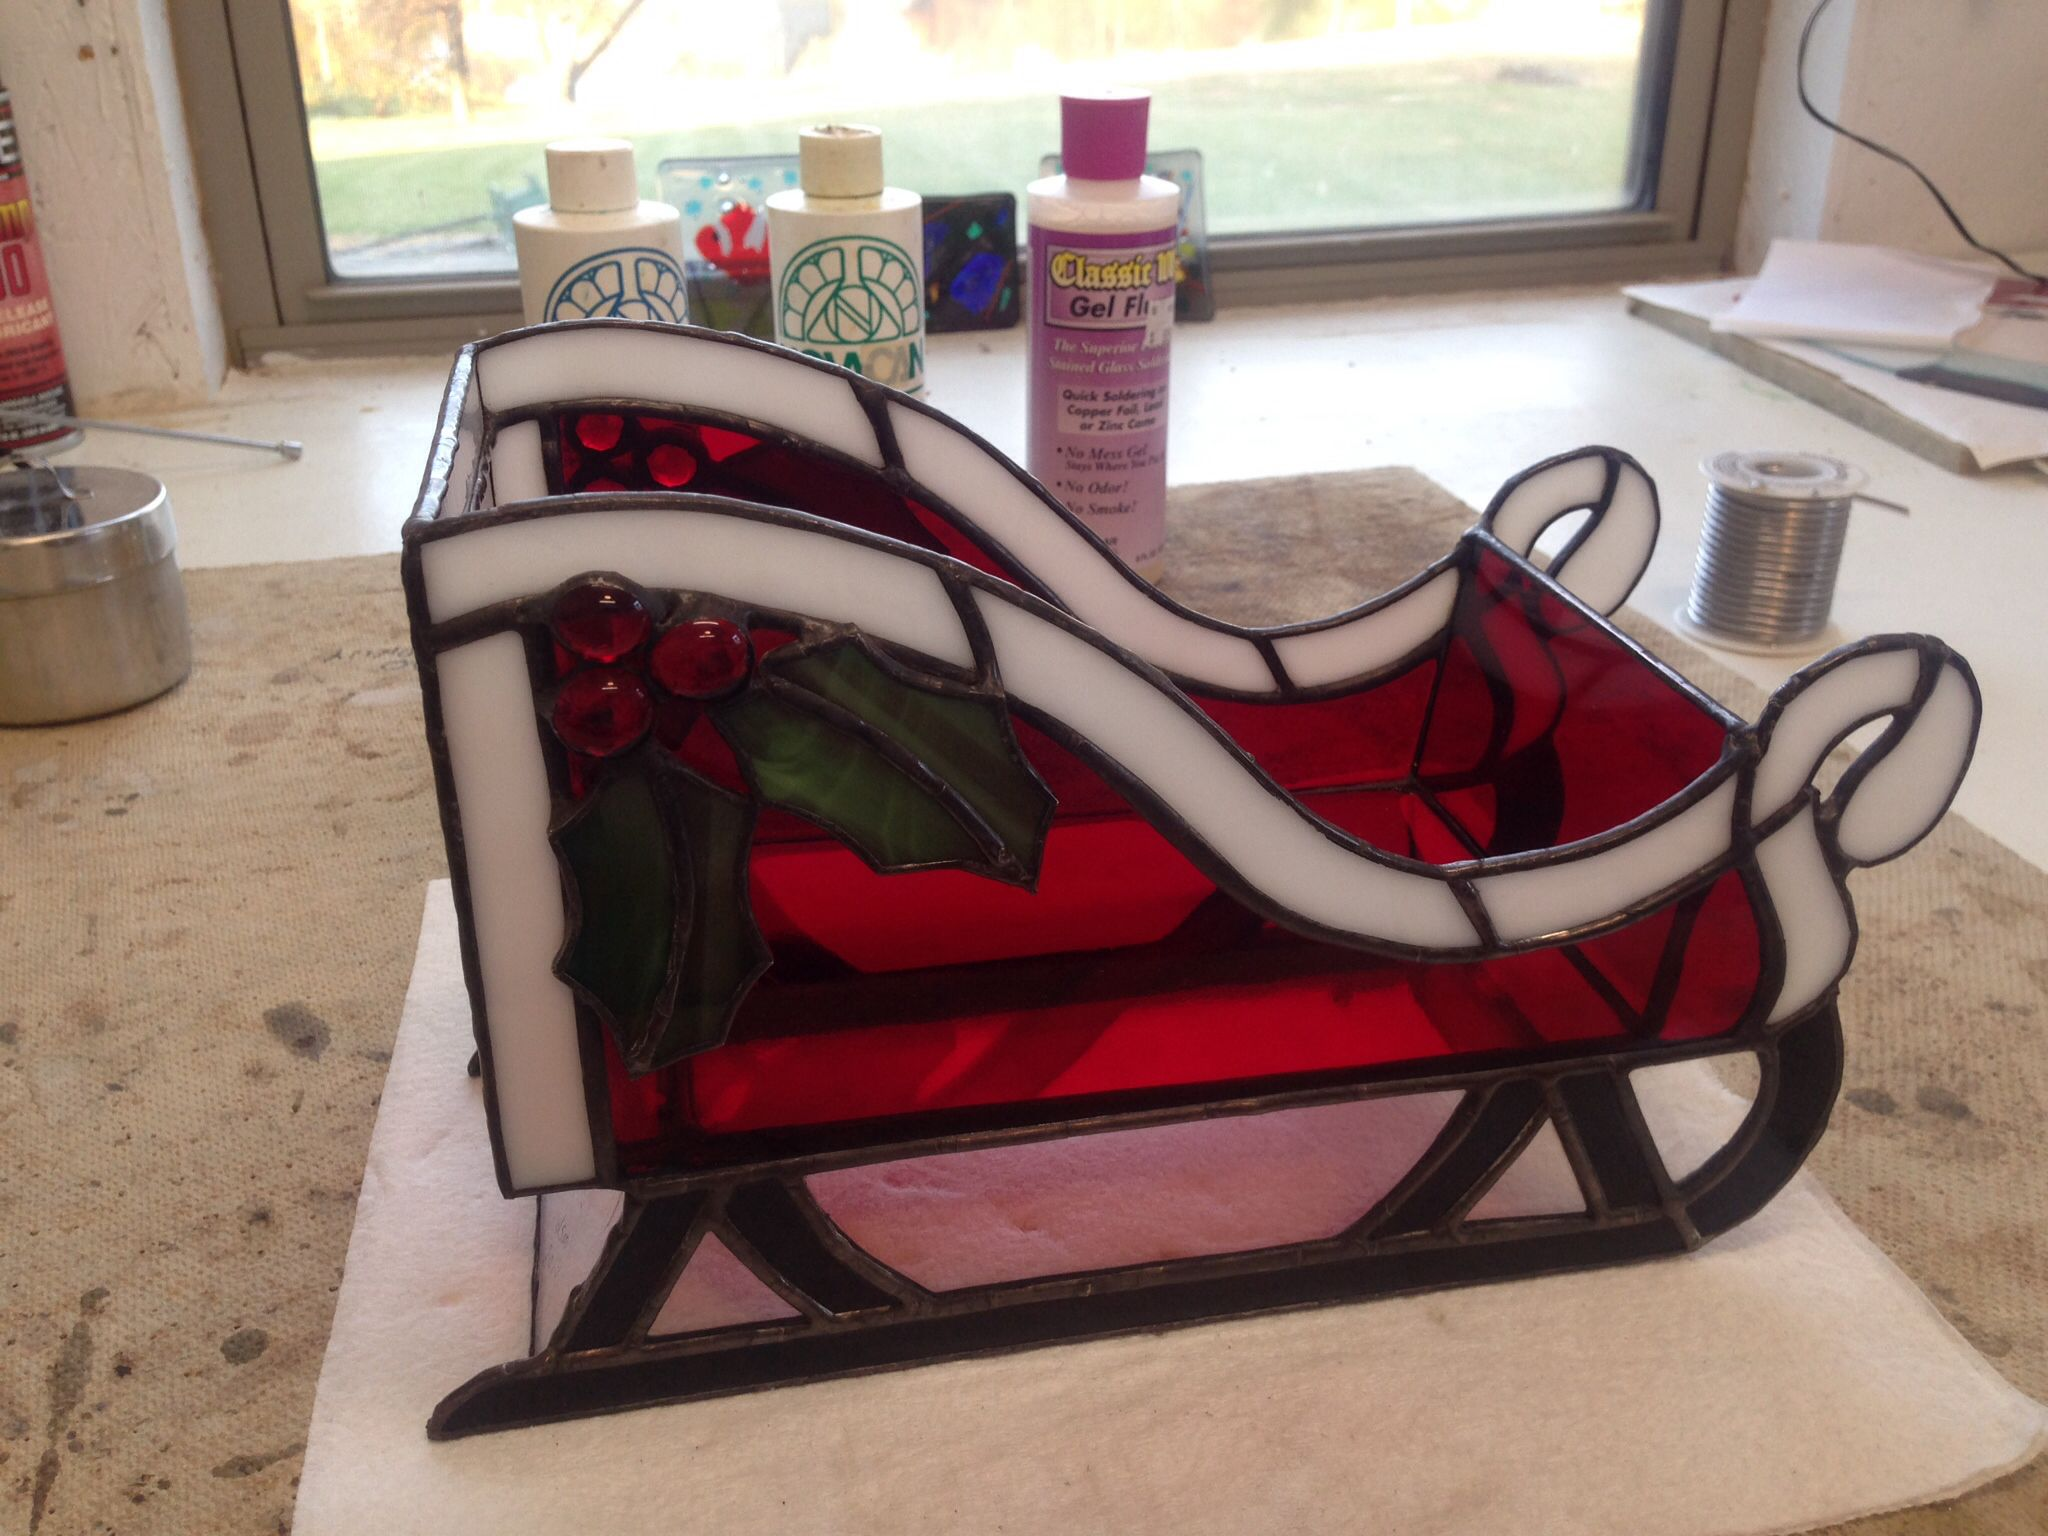 Christmas Sleigh Stained Glass Project Good For Holding Your Christmas